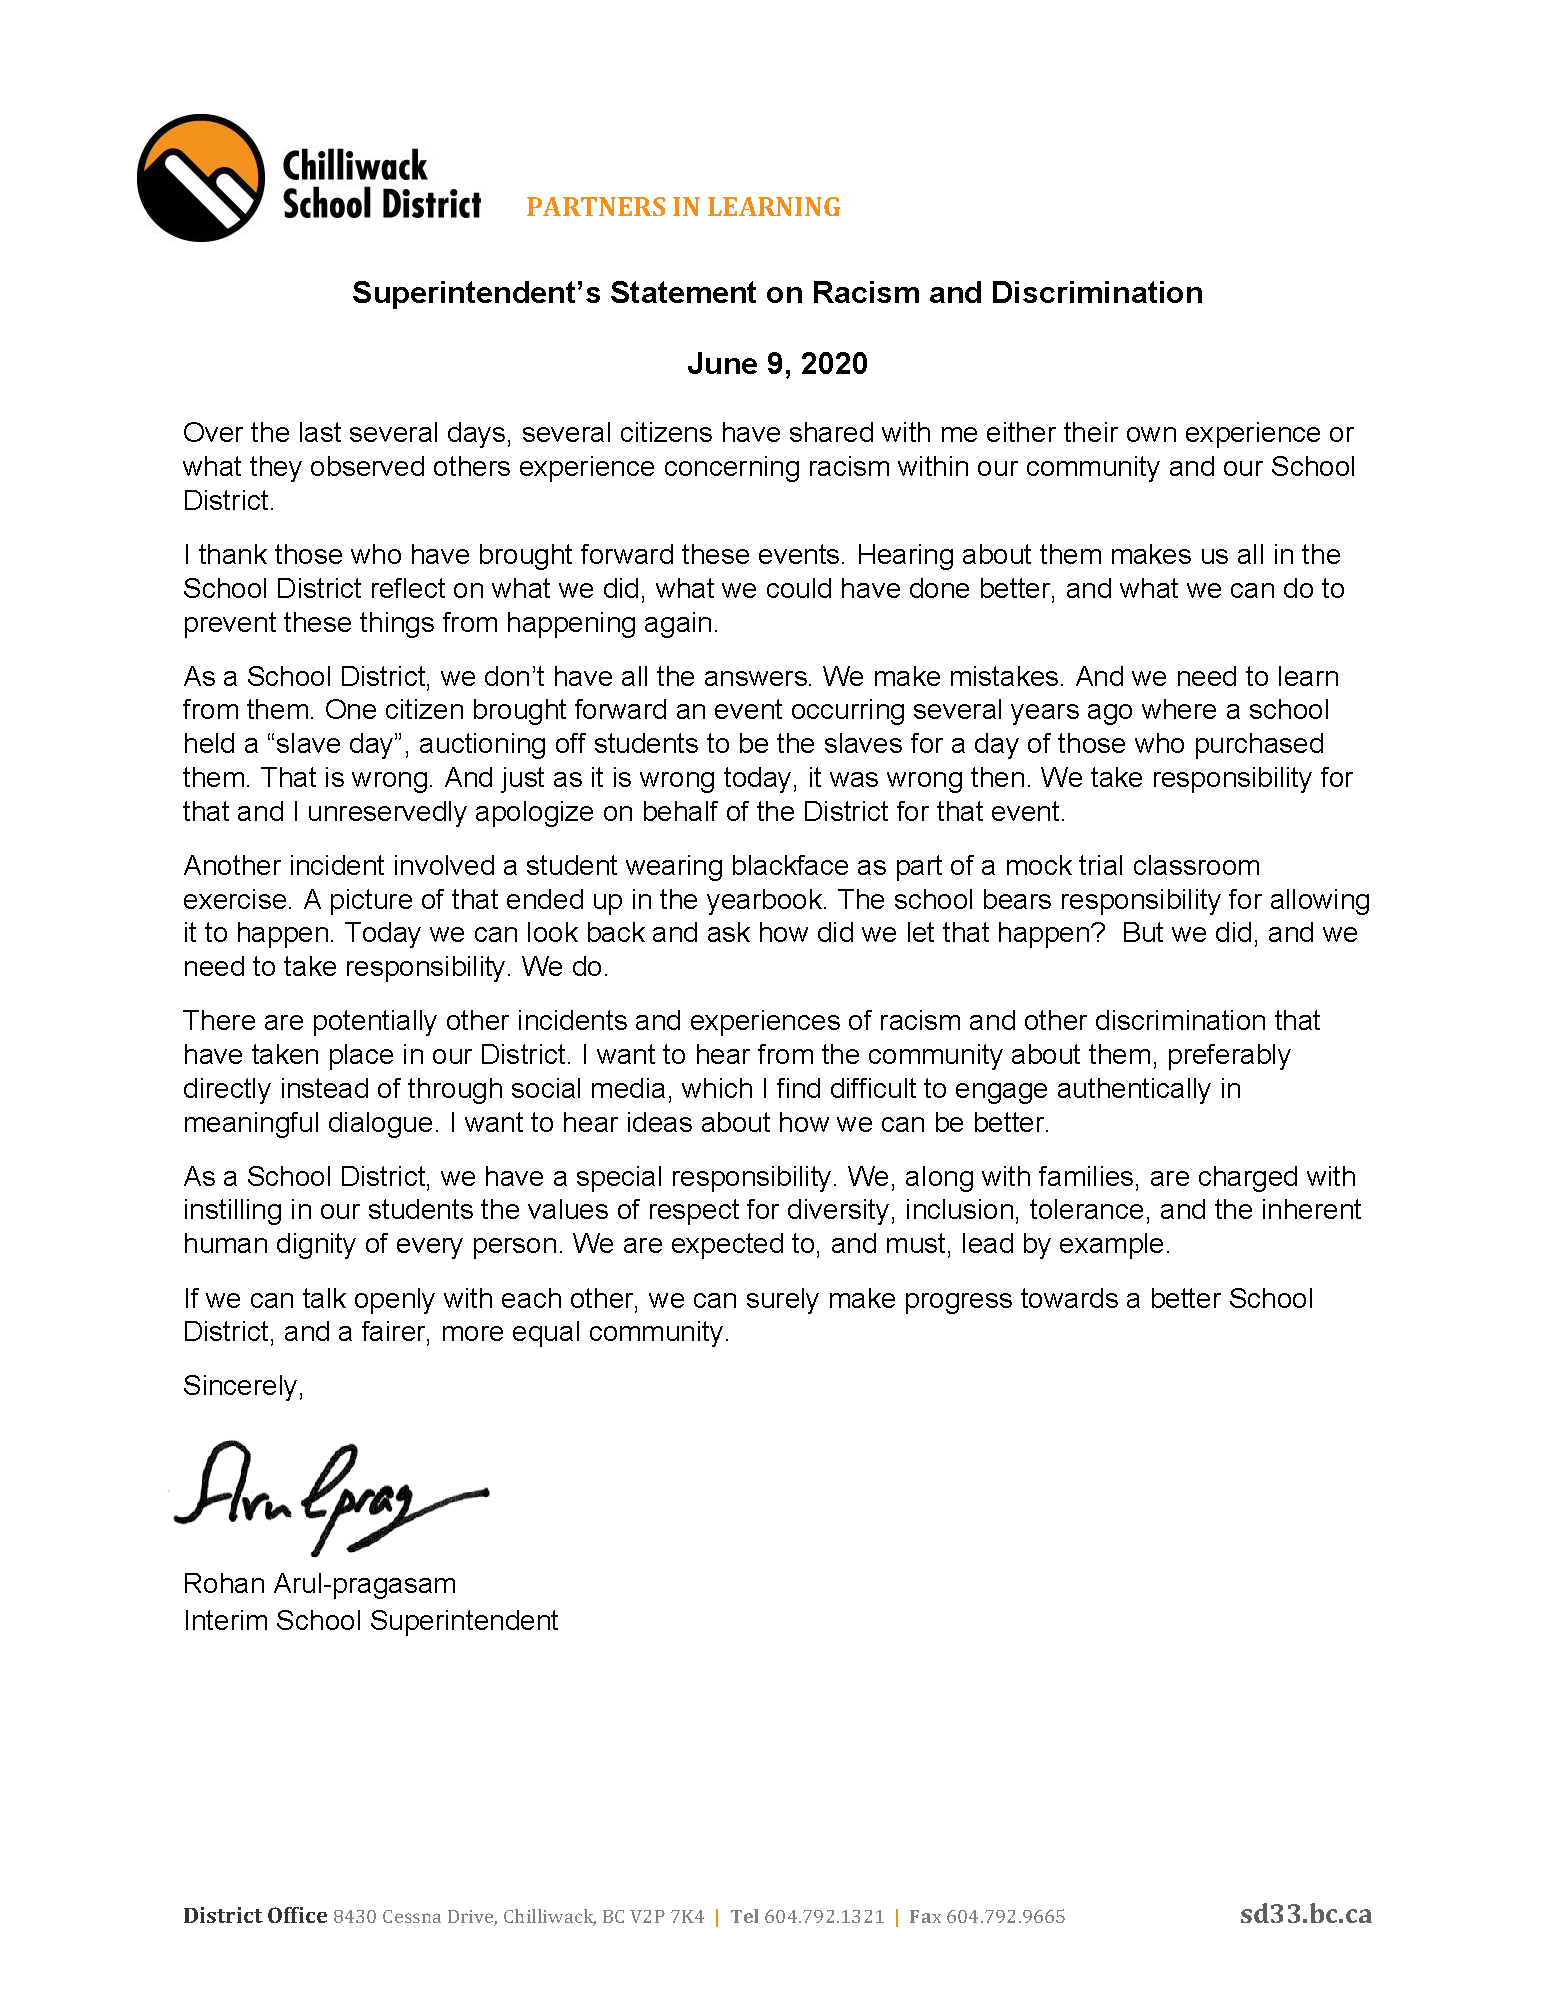 Statement on Racism and Discrimination